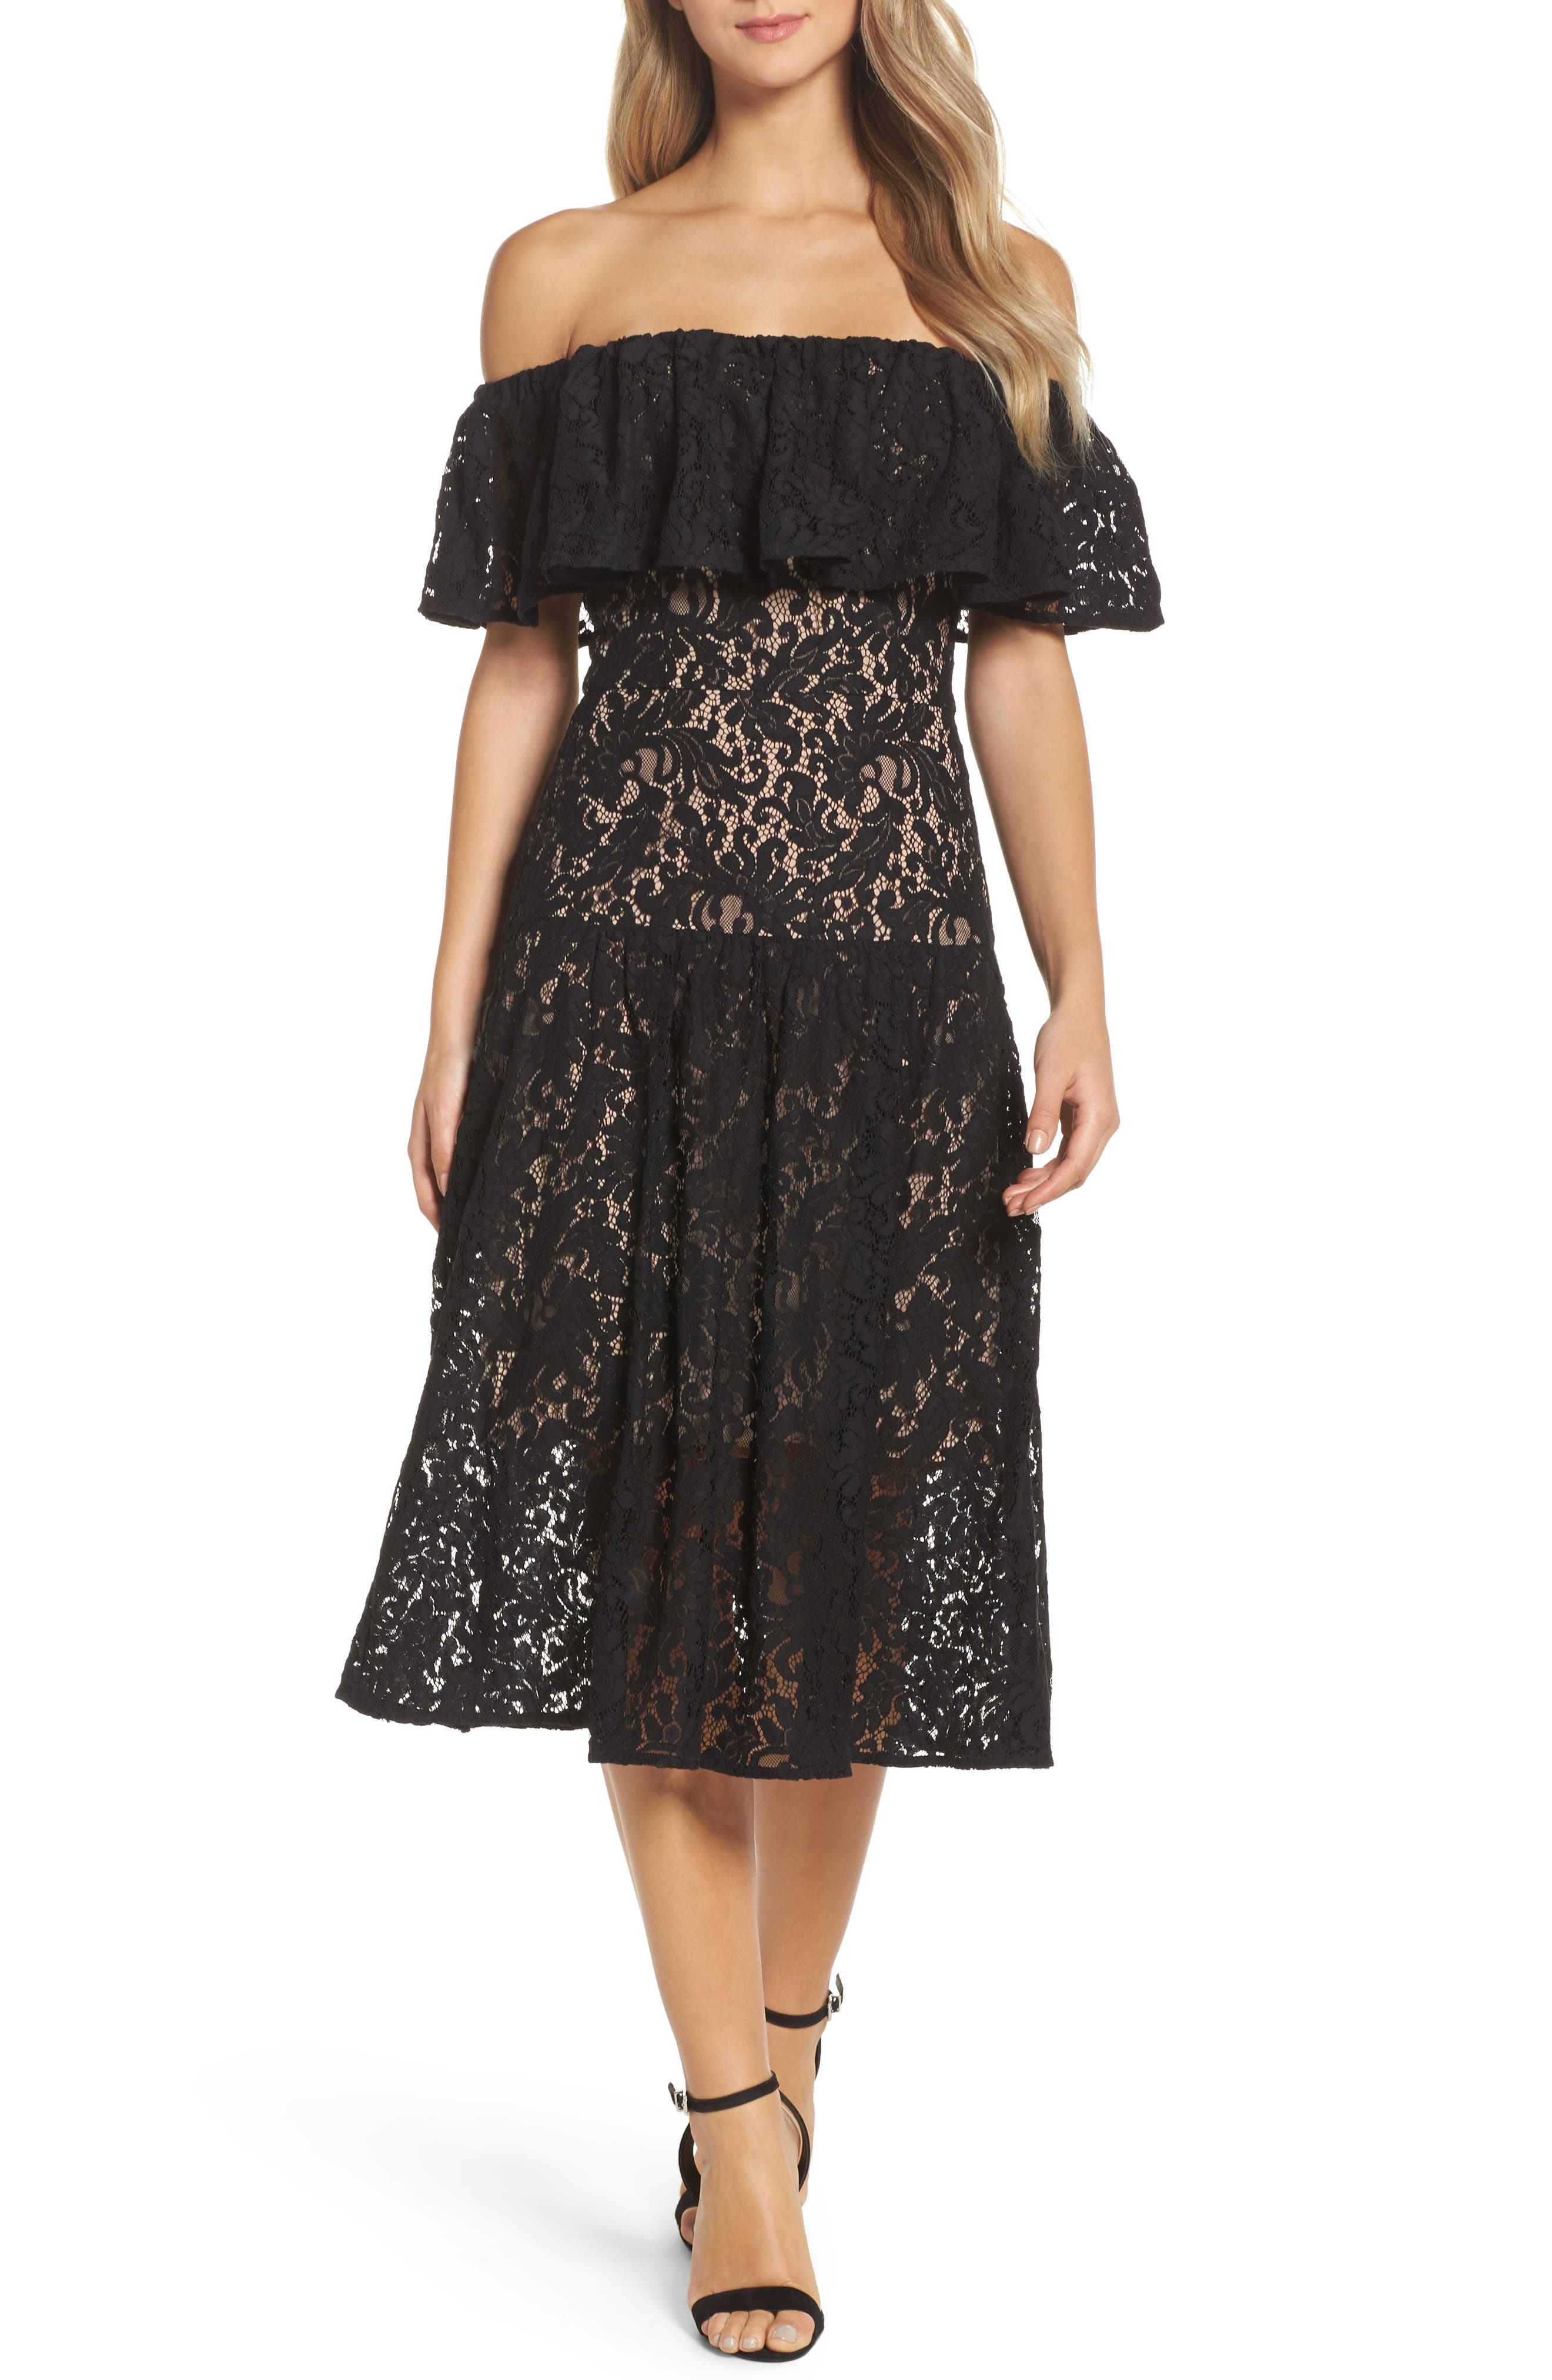 Sunday Silence Lace Off the Shoulder Dress,                         Main,                         color, Black